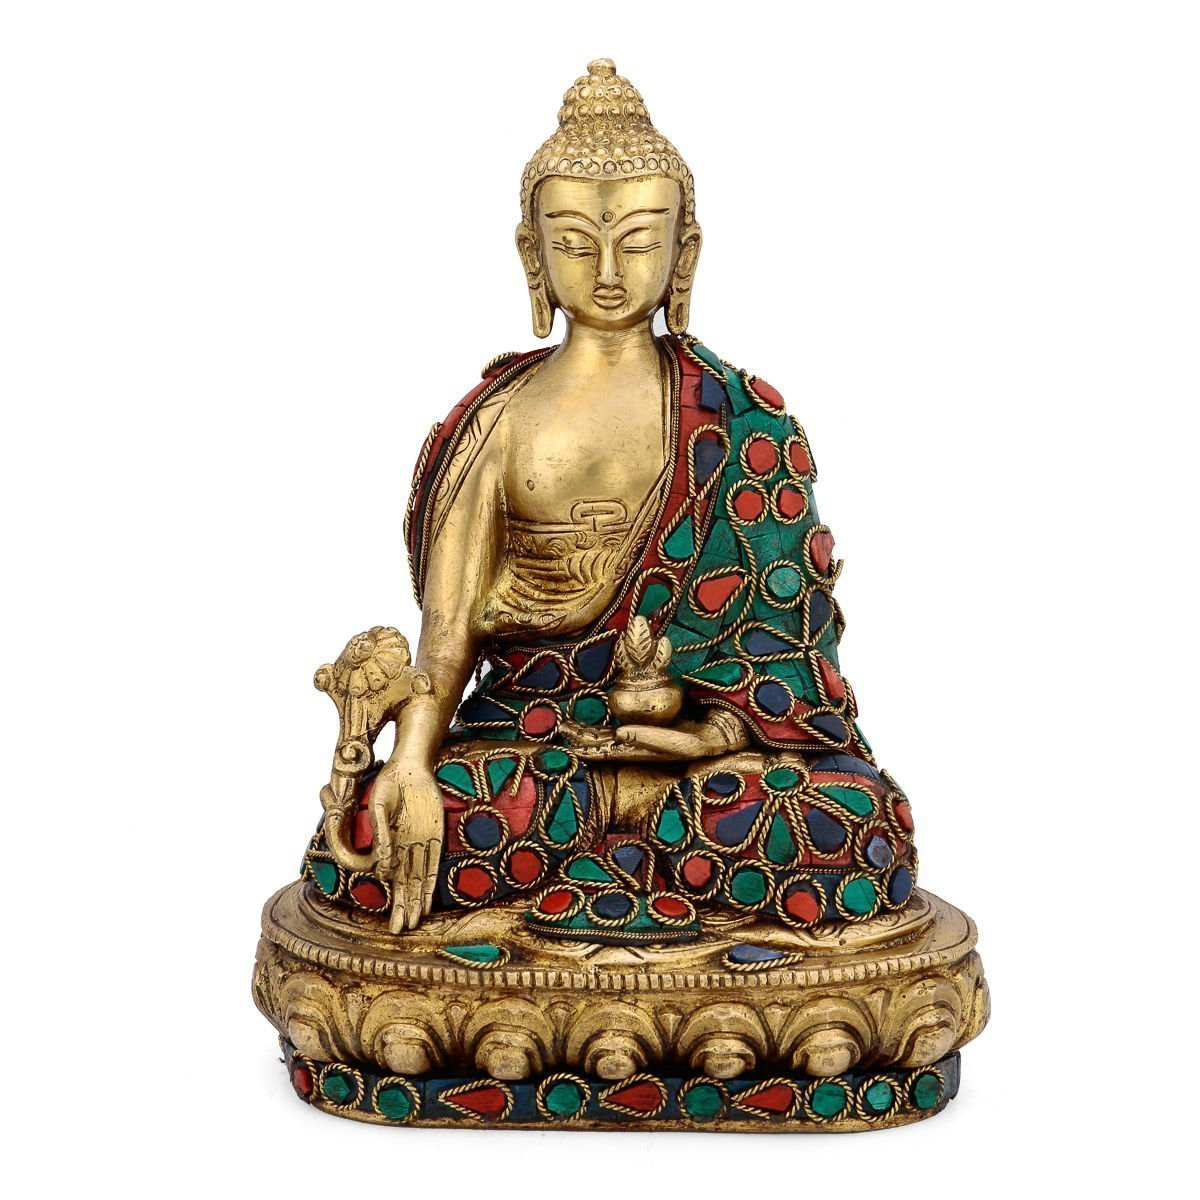 AapnoCraft Thai Medicine Buddha Meditating Statue Of Buddha Magnificent Work Table Decor & Wedding Gifts